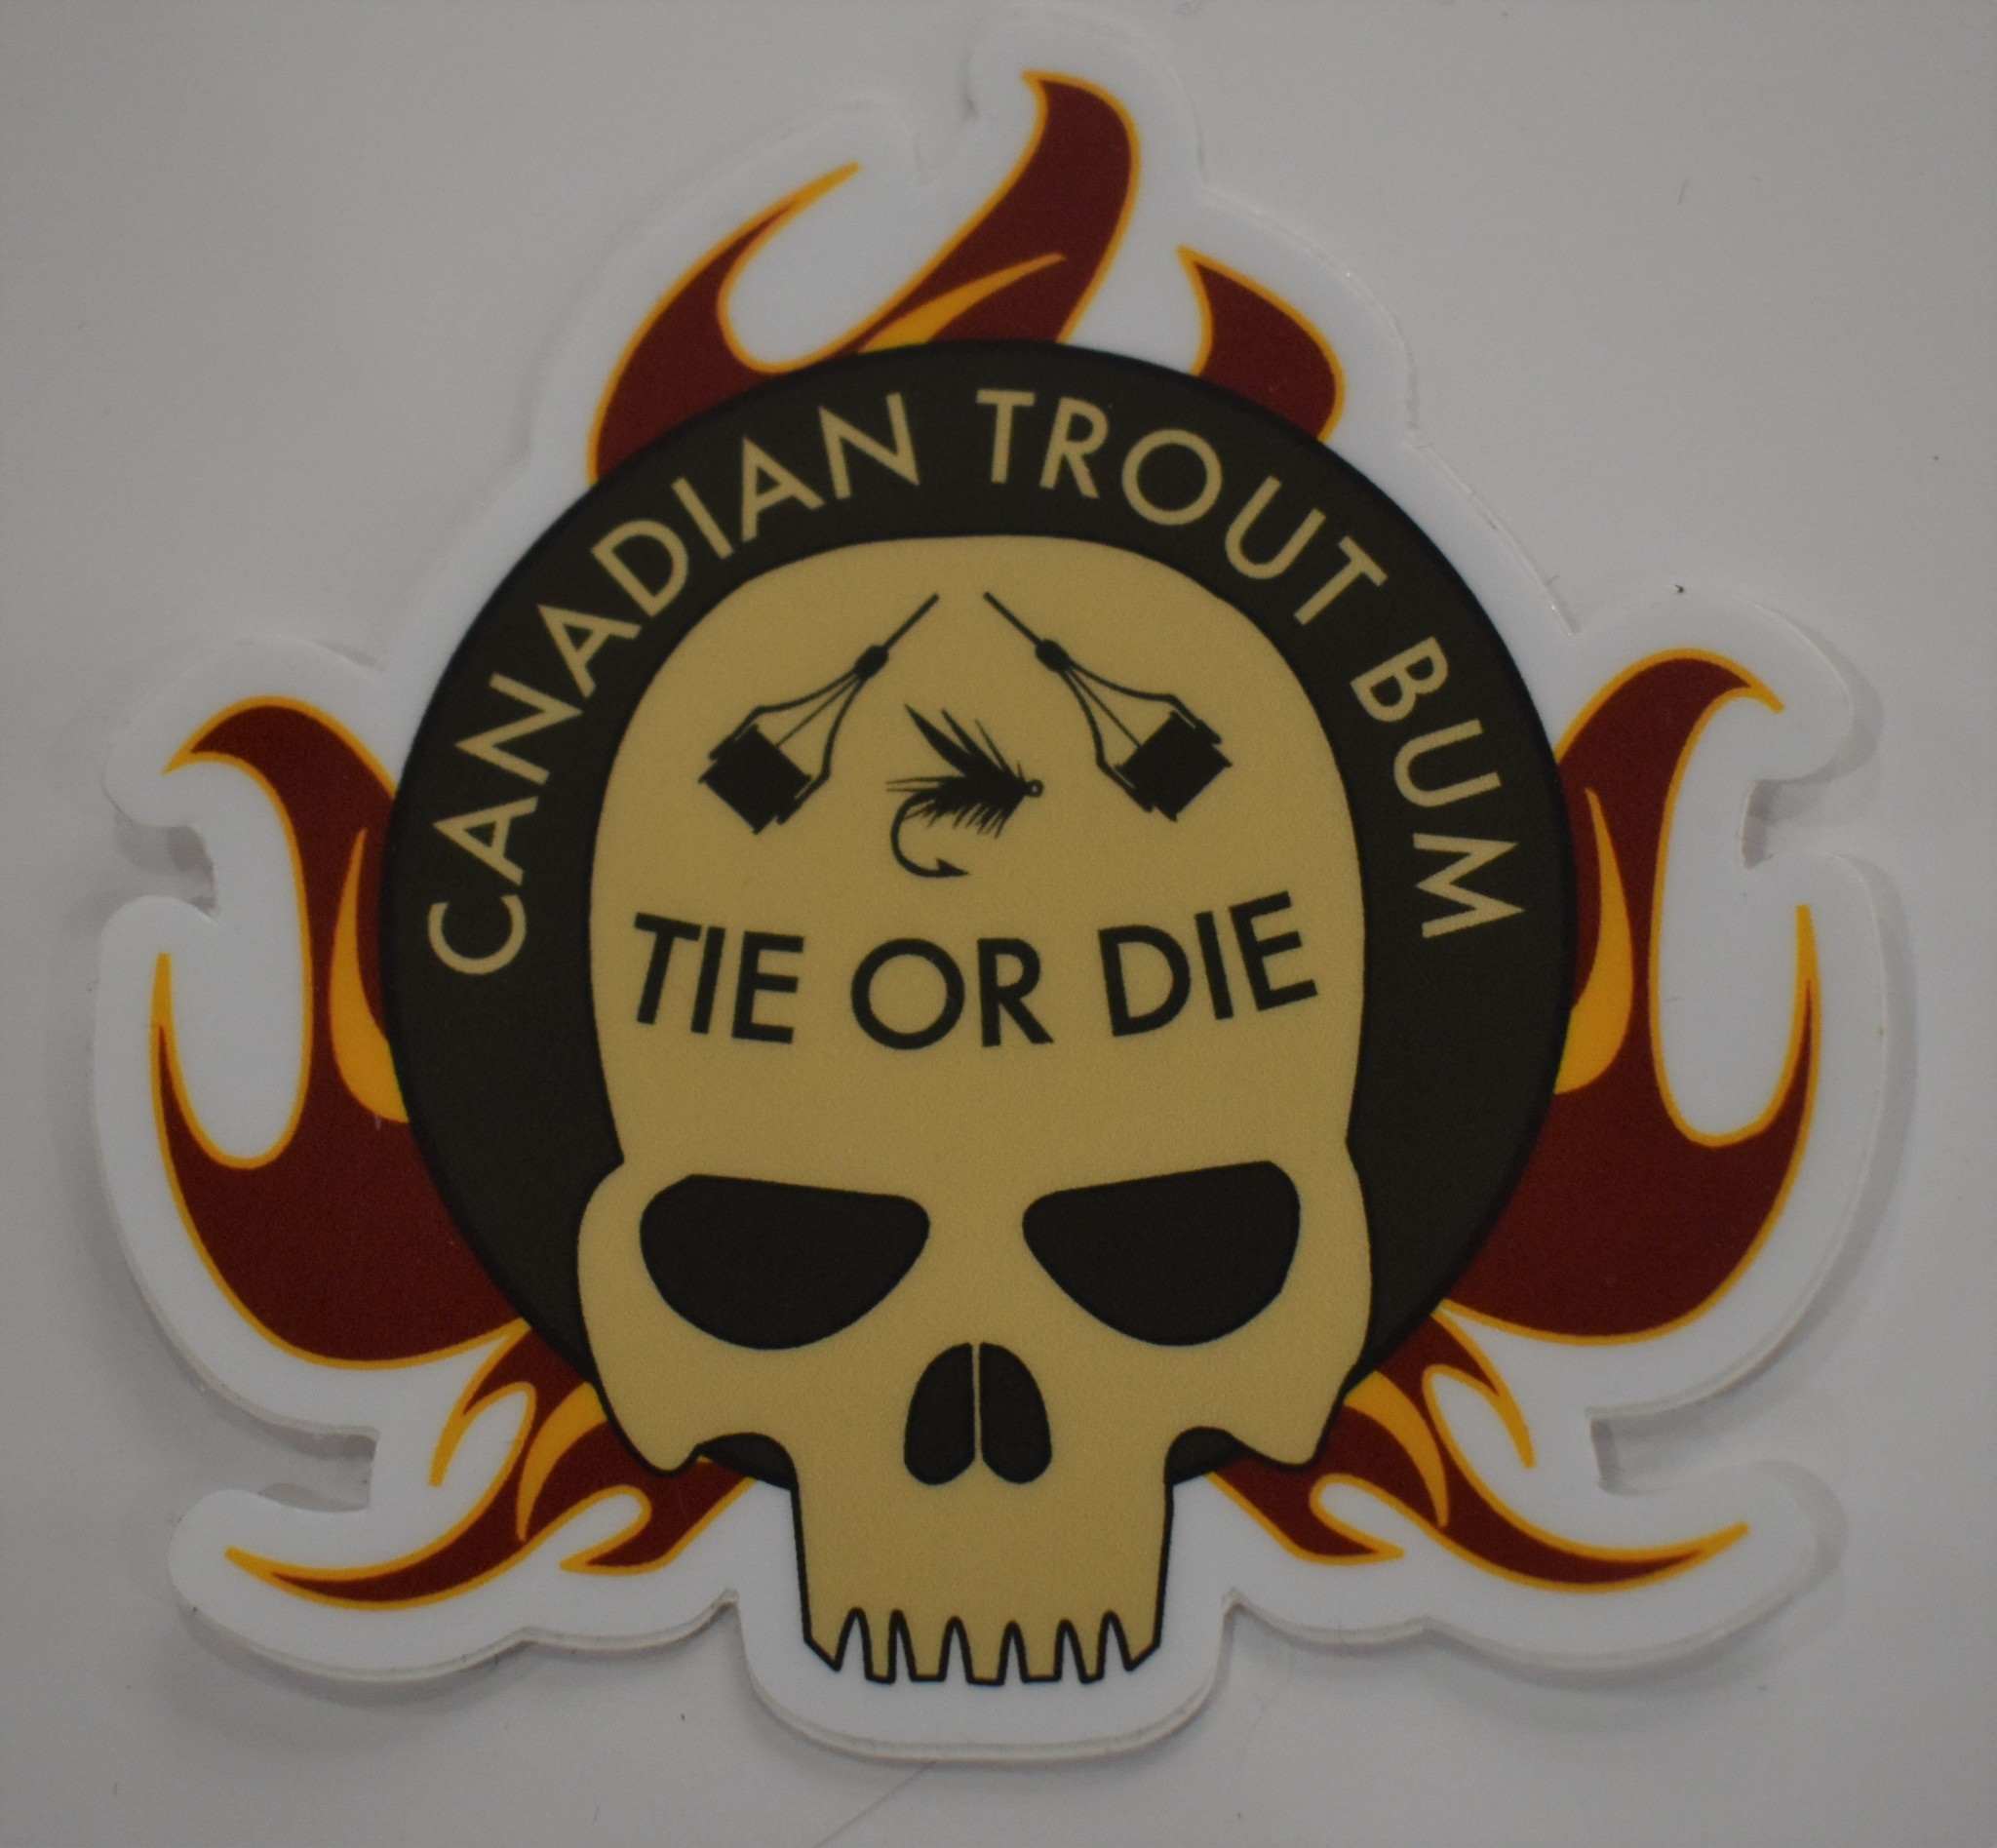 CANADIAN TROUT BUM / AMERICAN TROUT BUM Canadian Trout Bum Tie or Die Decal